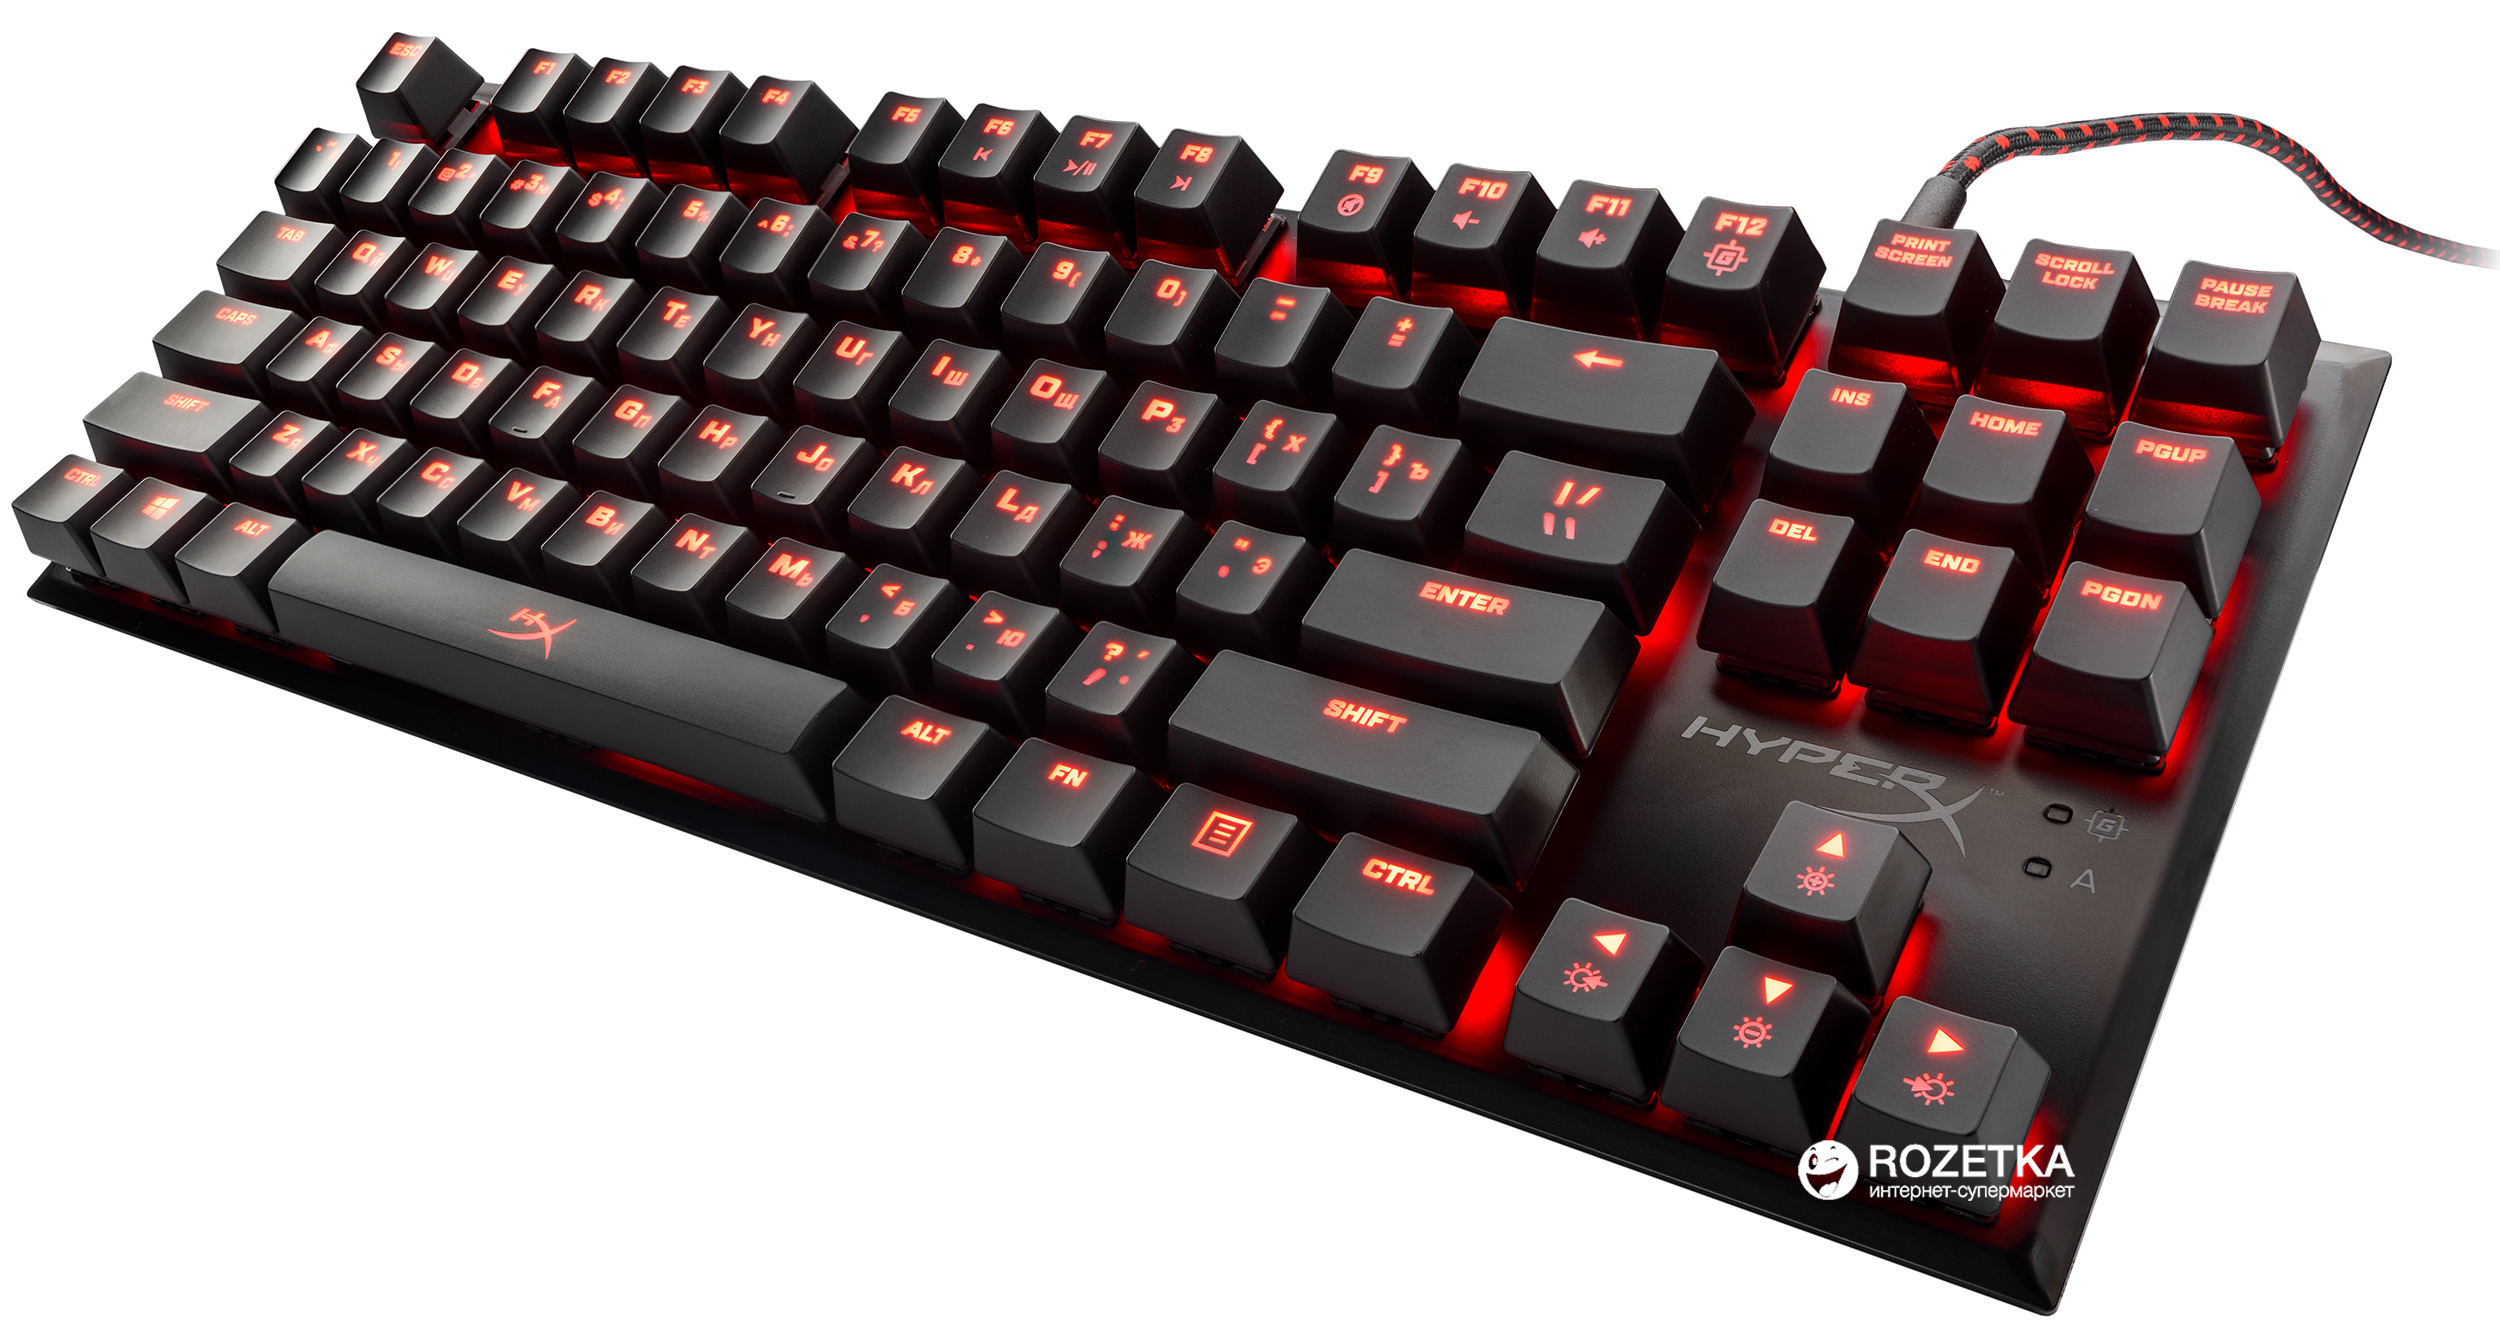 Клавиатура проводная HyperX Alloy FPS Pro Cherry MX Red USB Black (HX-KB4RD1-RU/R1)